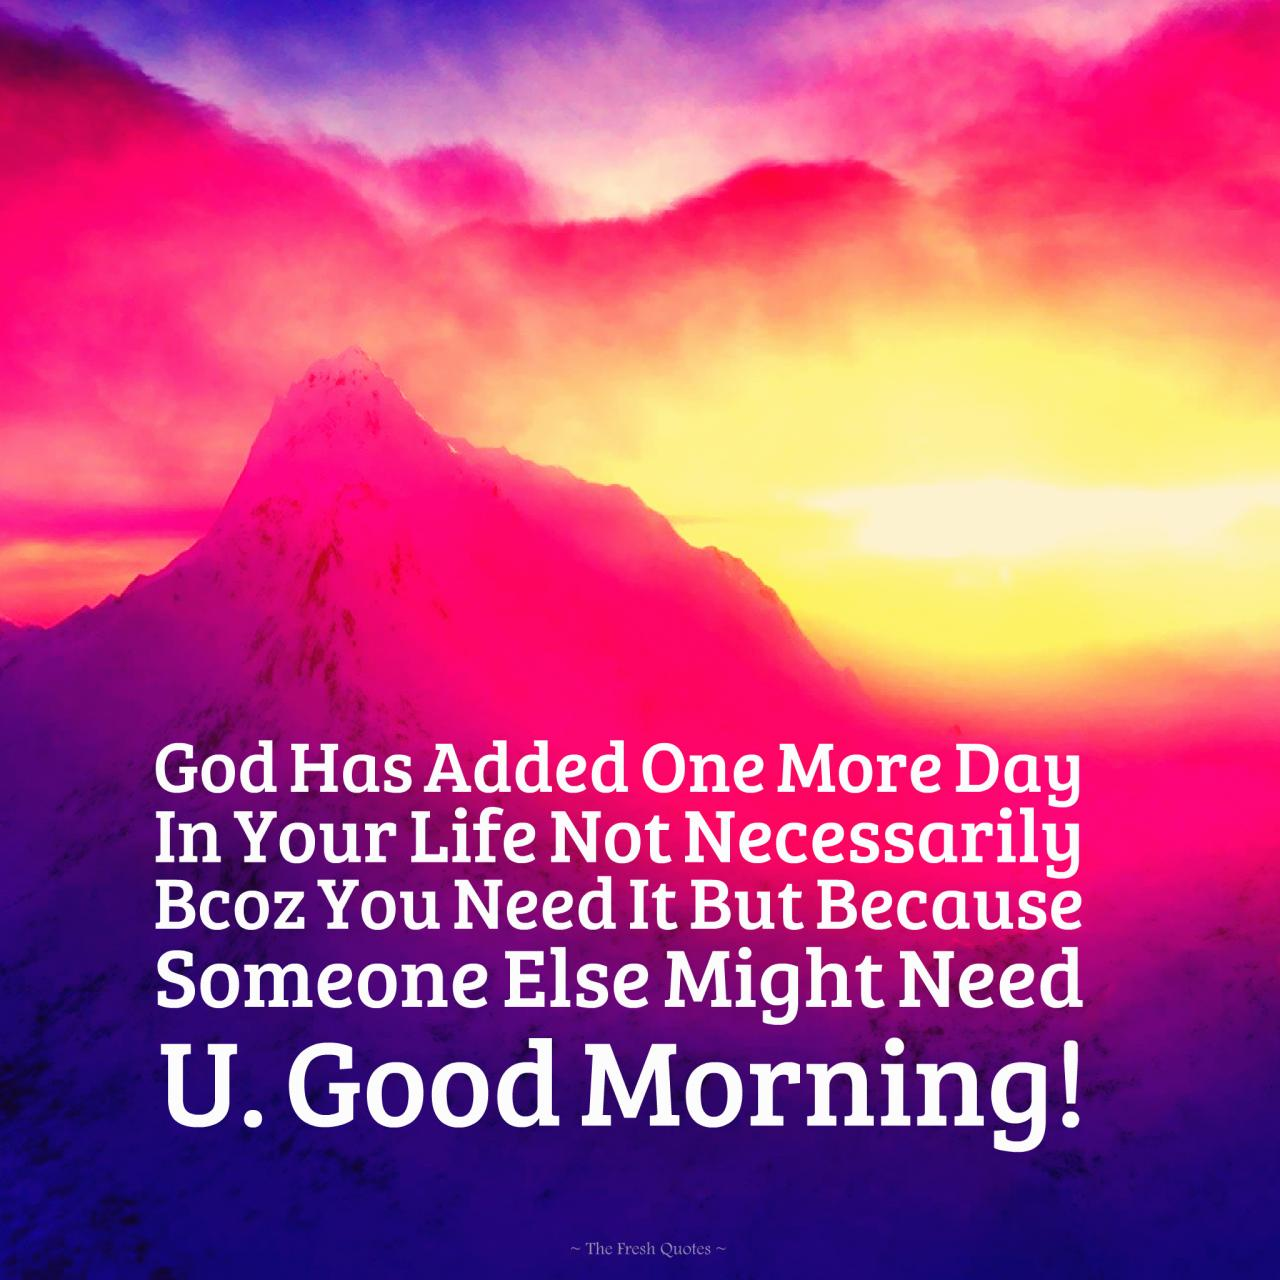 Has Added One More Day In Your Life Not Necessarily Bcoz You Need It But Because Someone Else Might Need U Good Morning